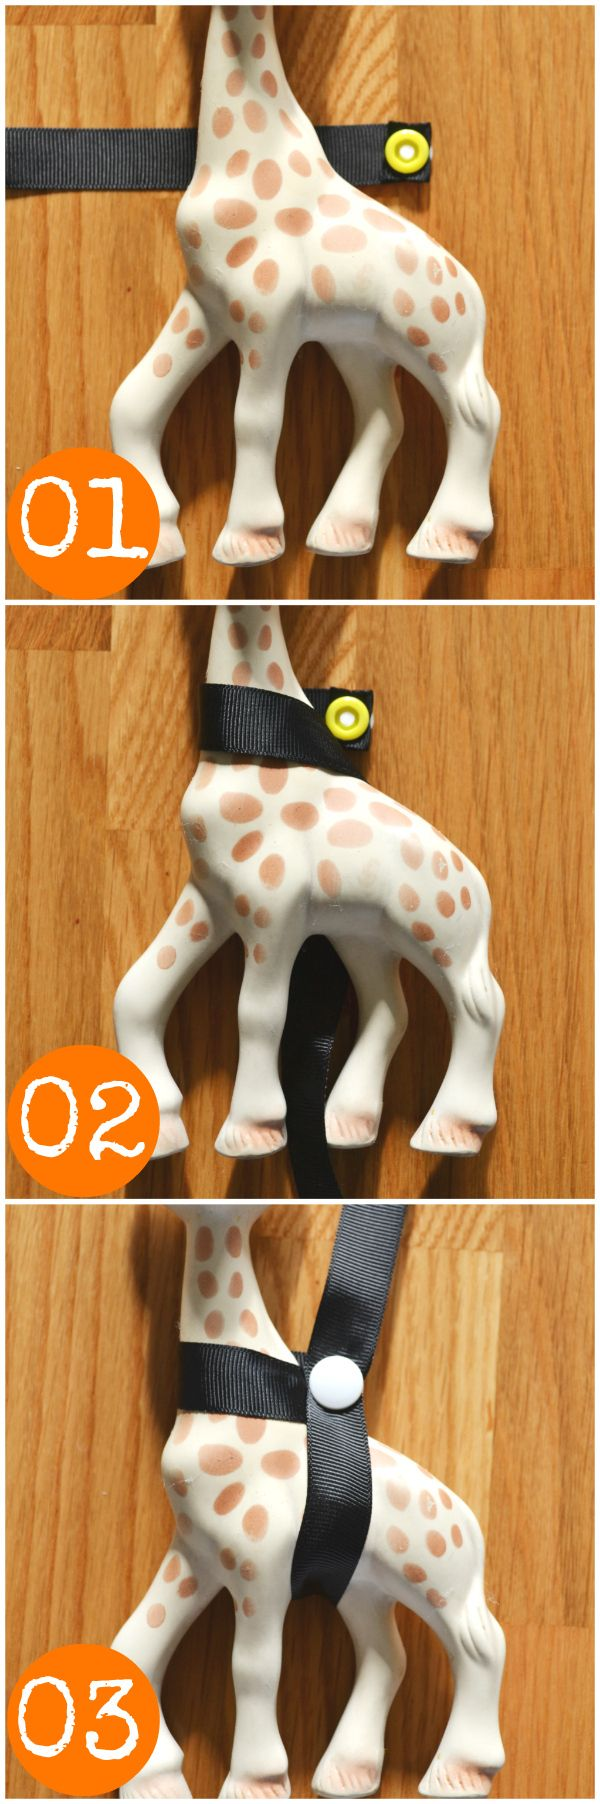 This is soo ADORABLE... a Baby Teether in the shape of a Giraffe!!! You can make lots of cute Straps to keep her secure too!... LOVE IT!!!